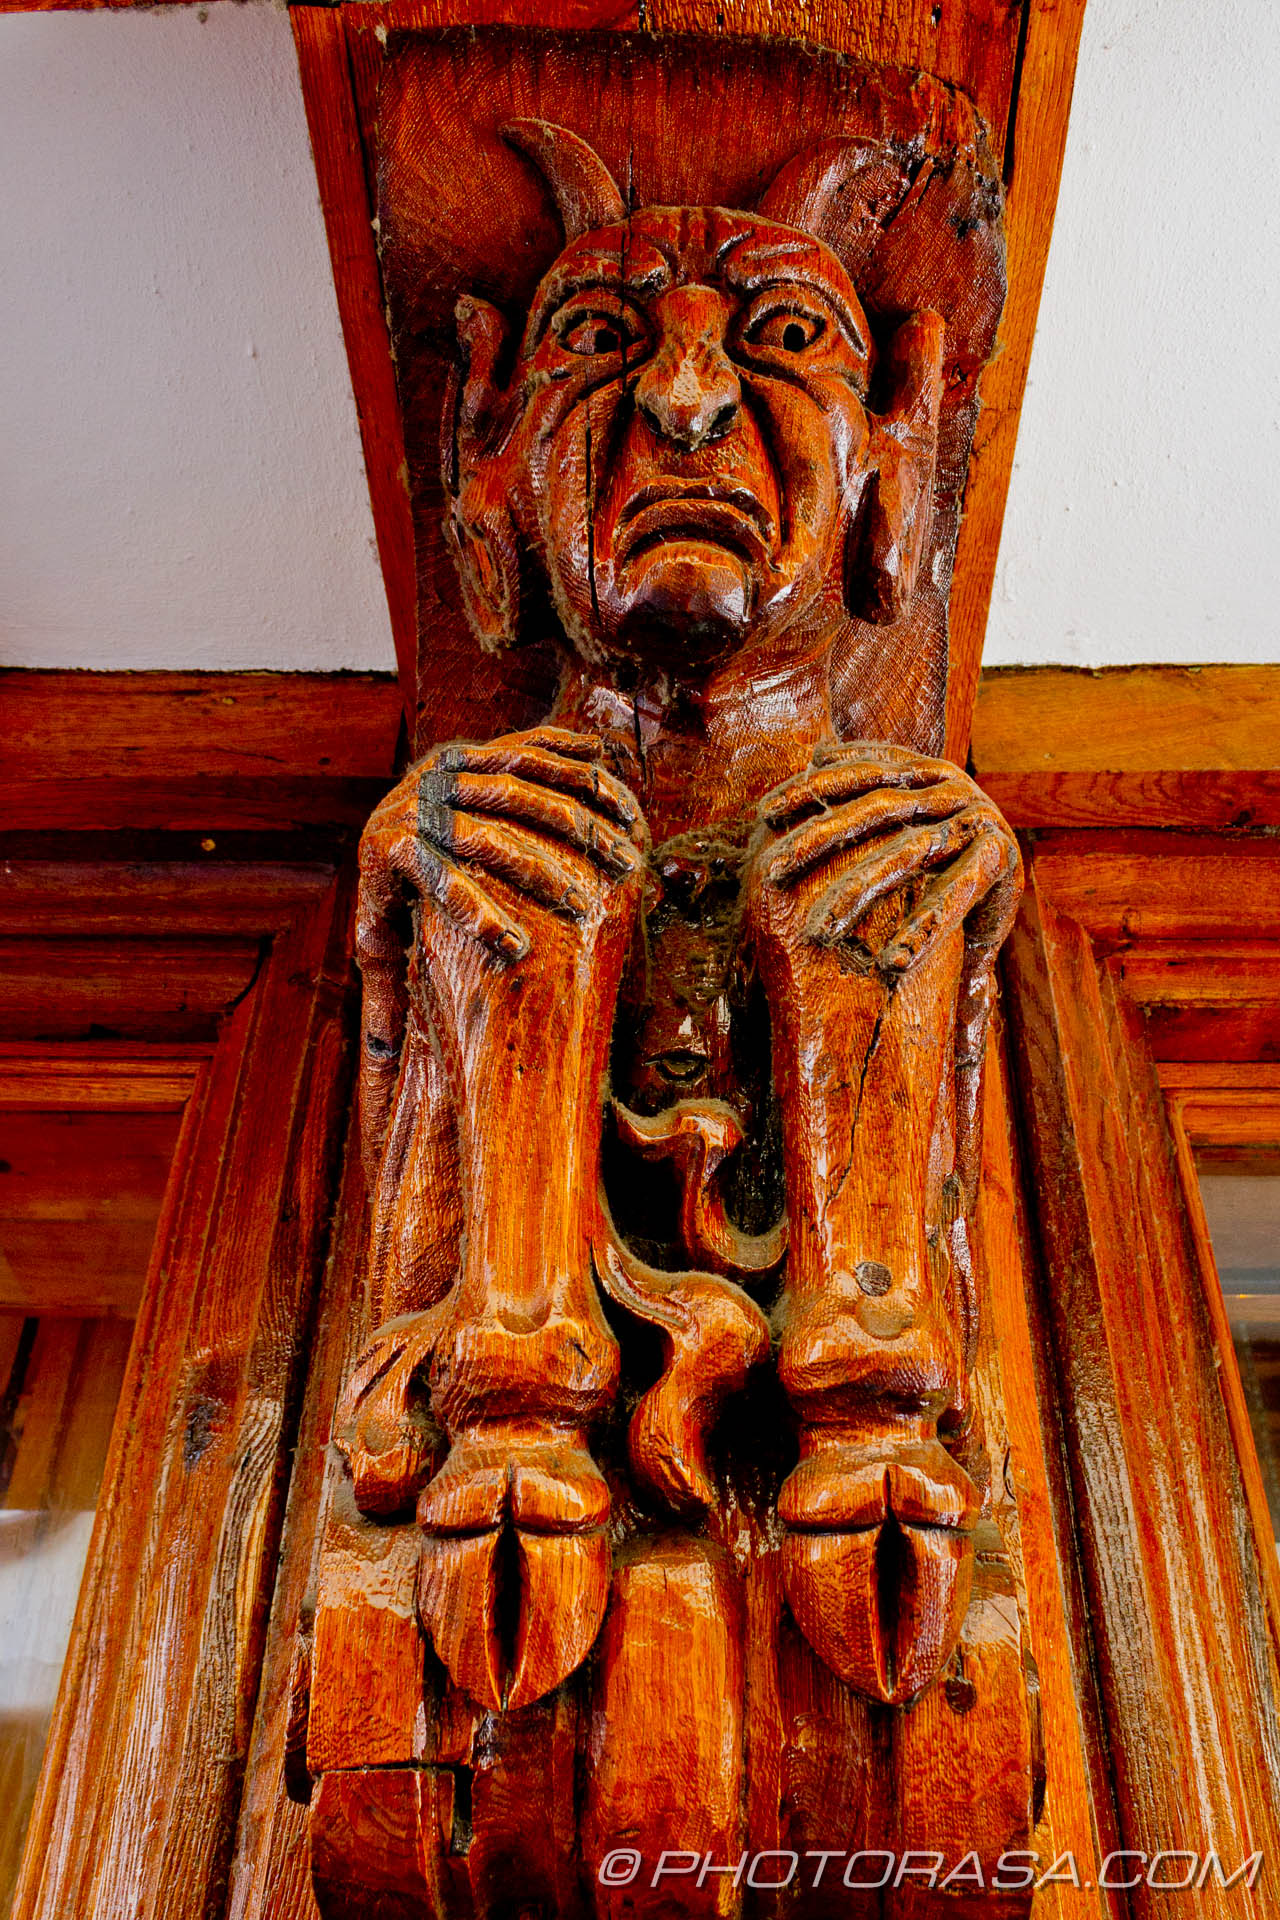 http://photorasa.com/canterbury-trip/hooved-pan-carved-into-to-wooden-post/